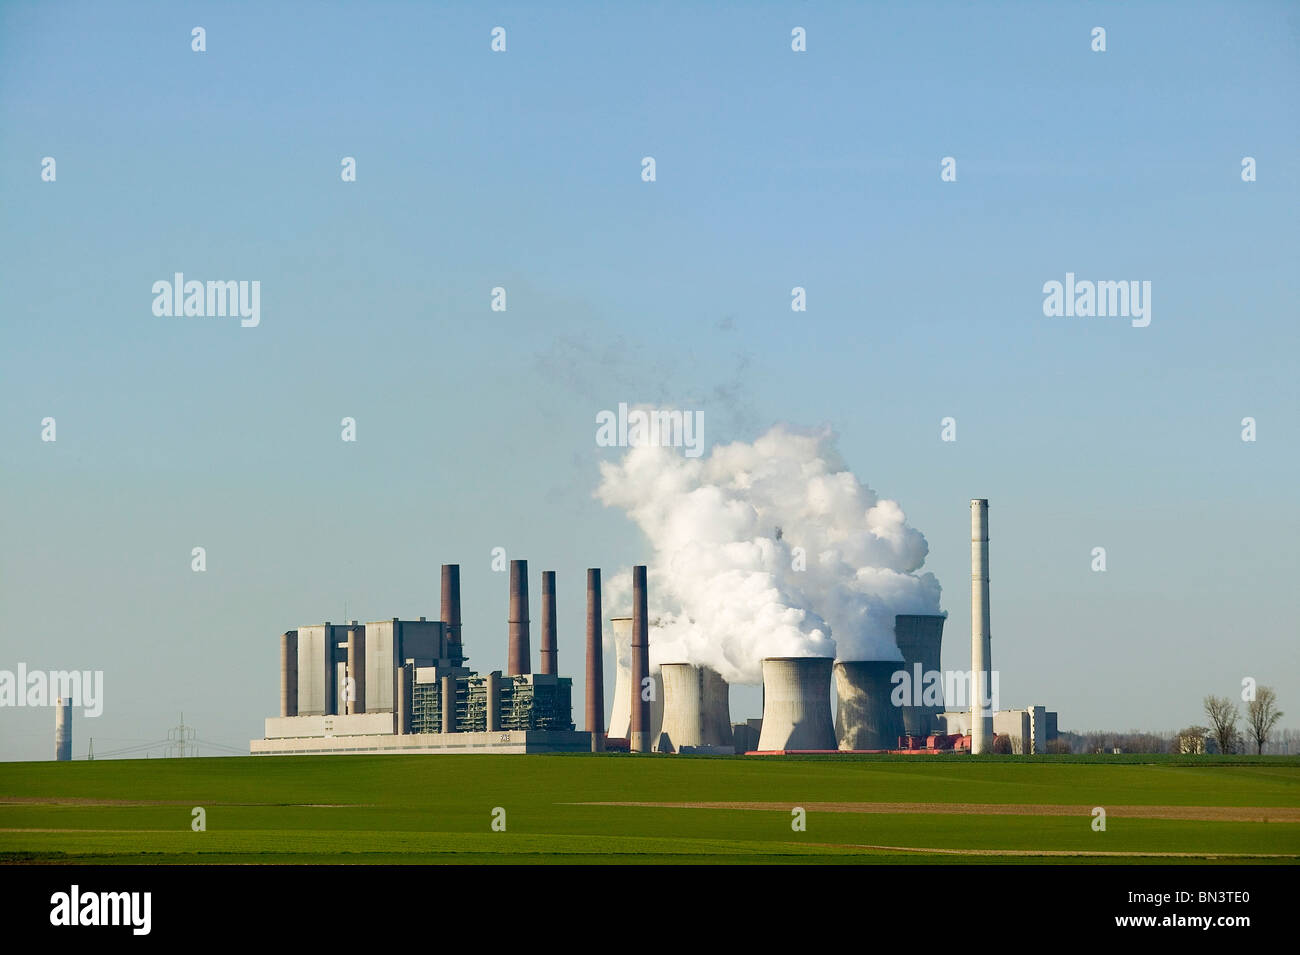 Smoke emitting from smokestacks Stock Photo